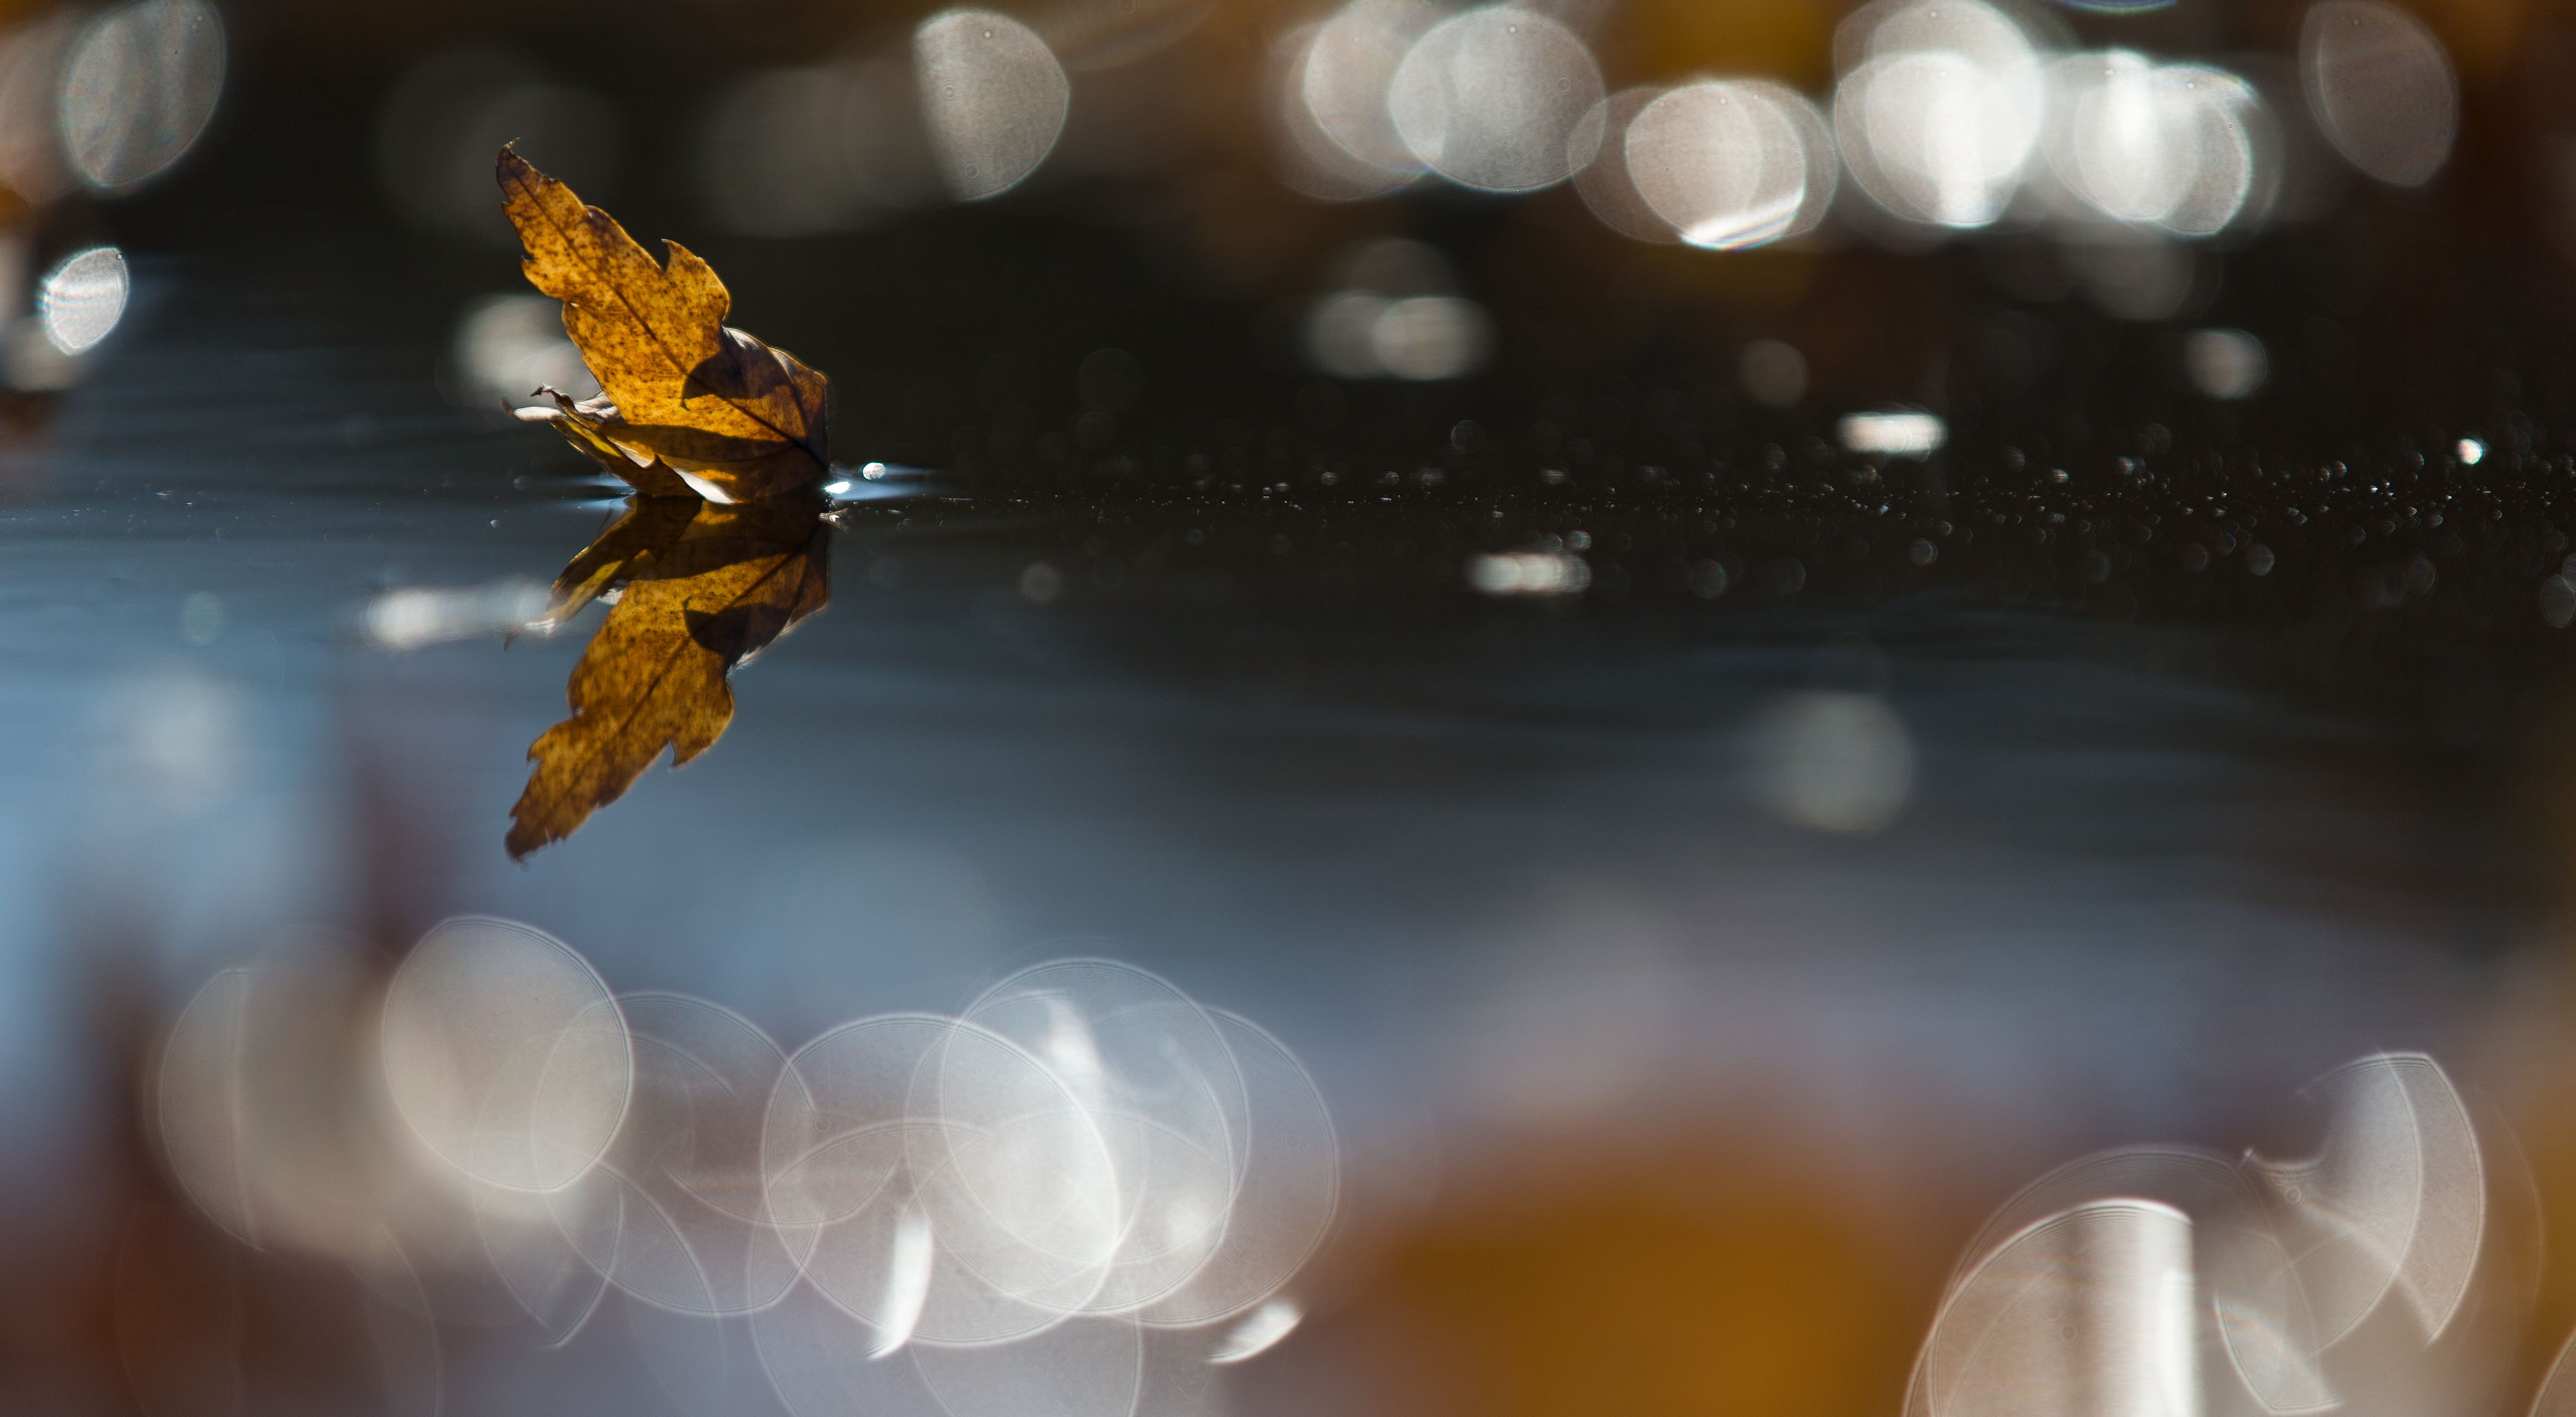 A LEAF ON THE WATER filters golden light through the water's surface.